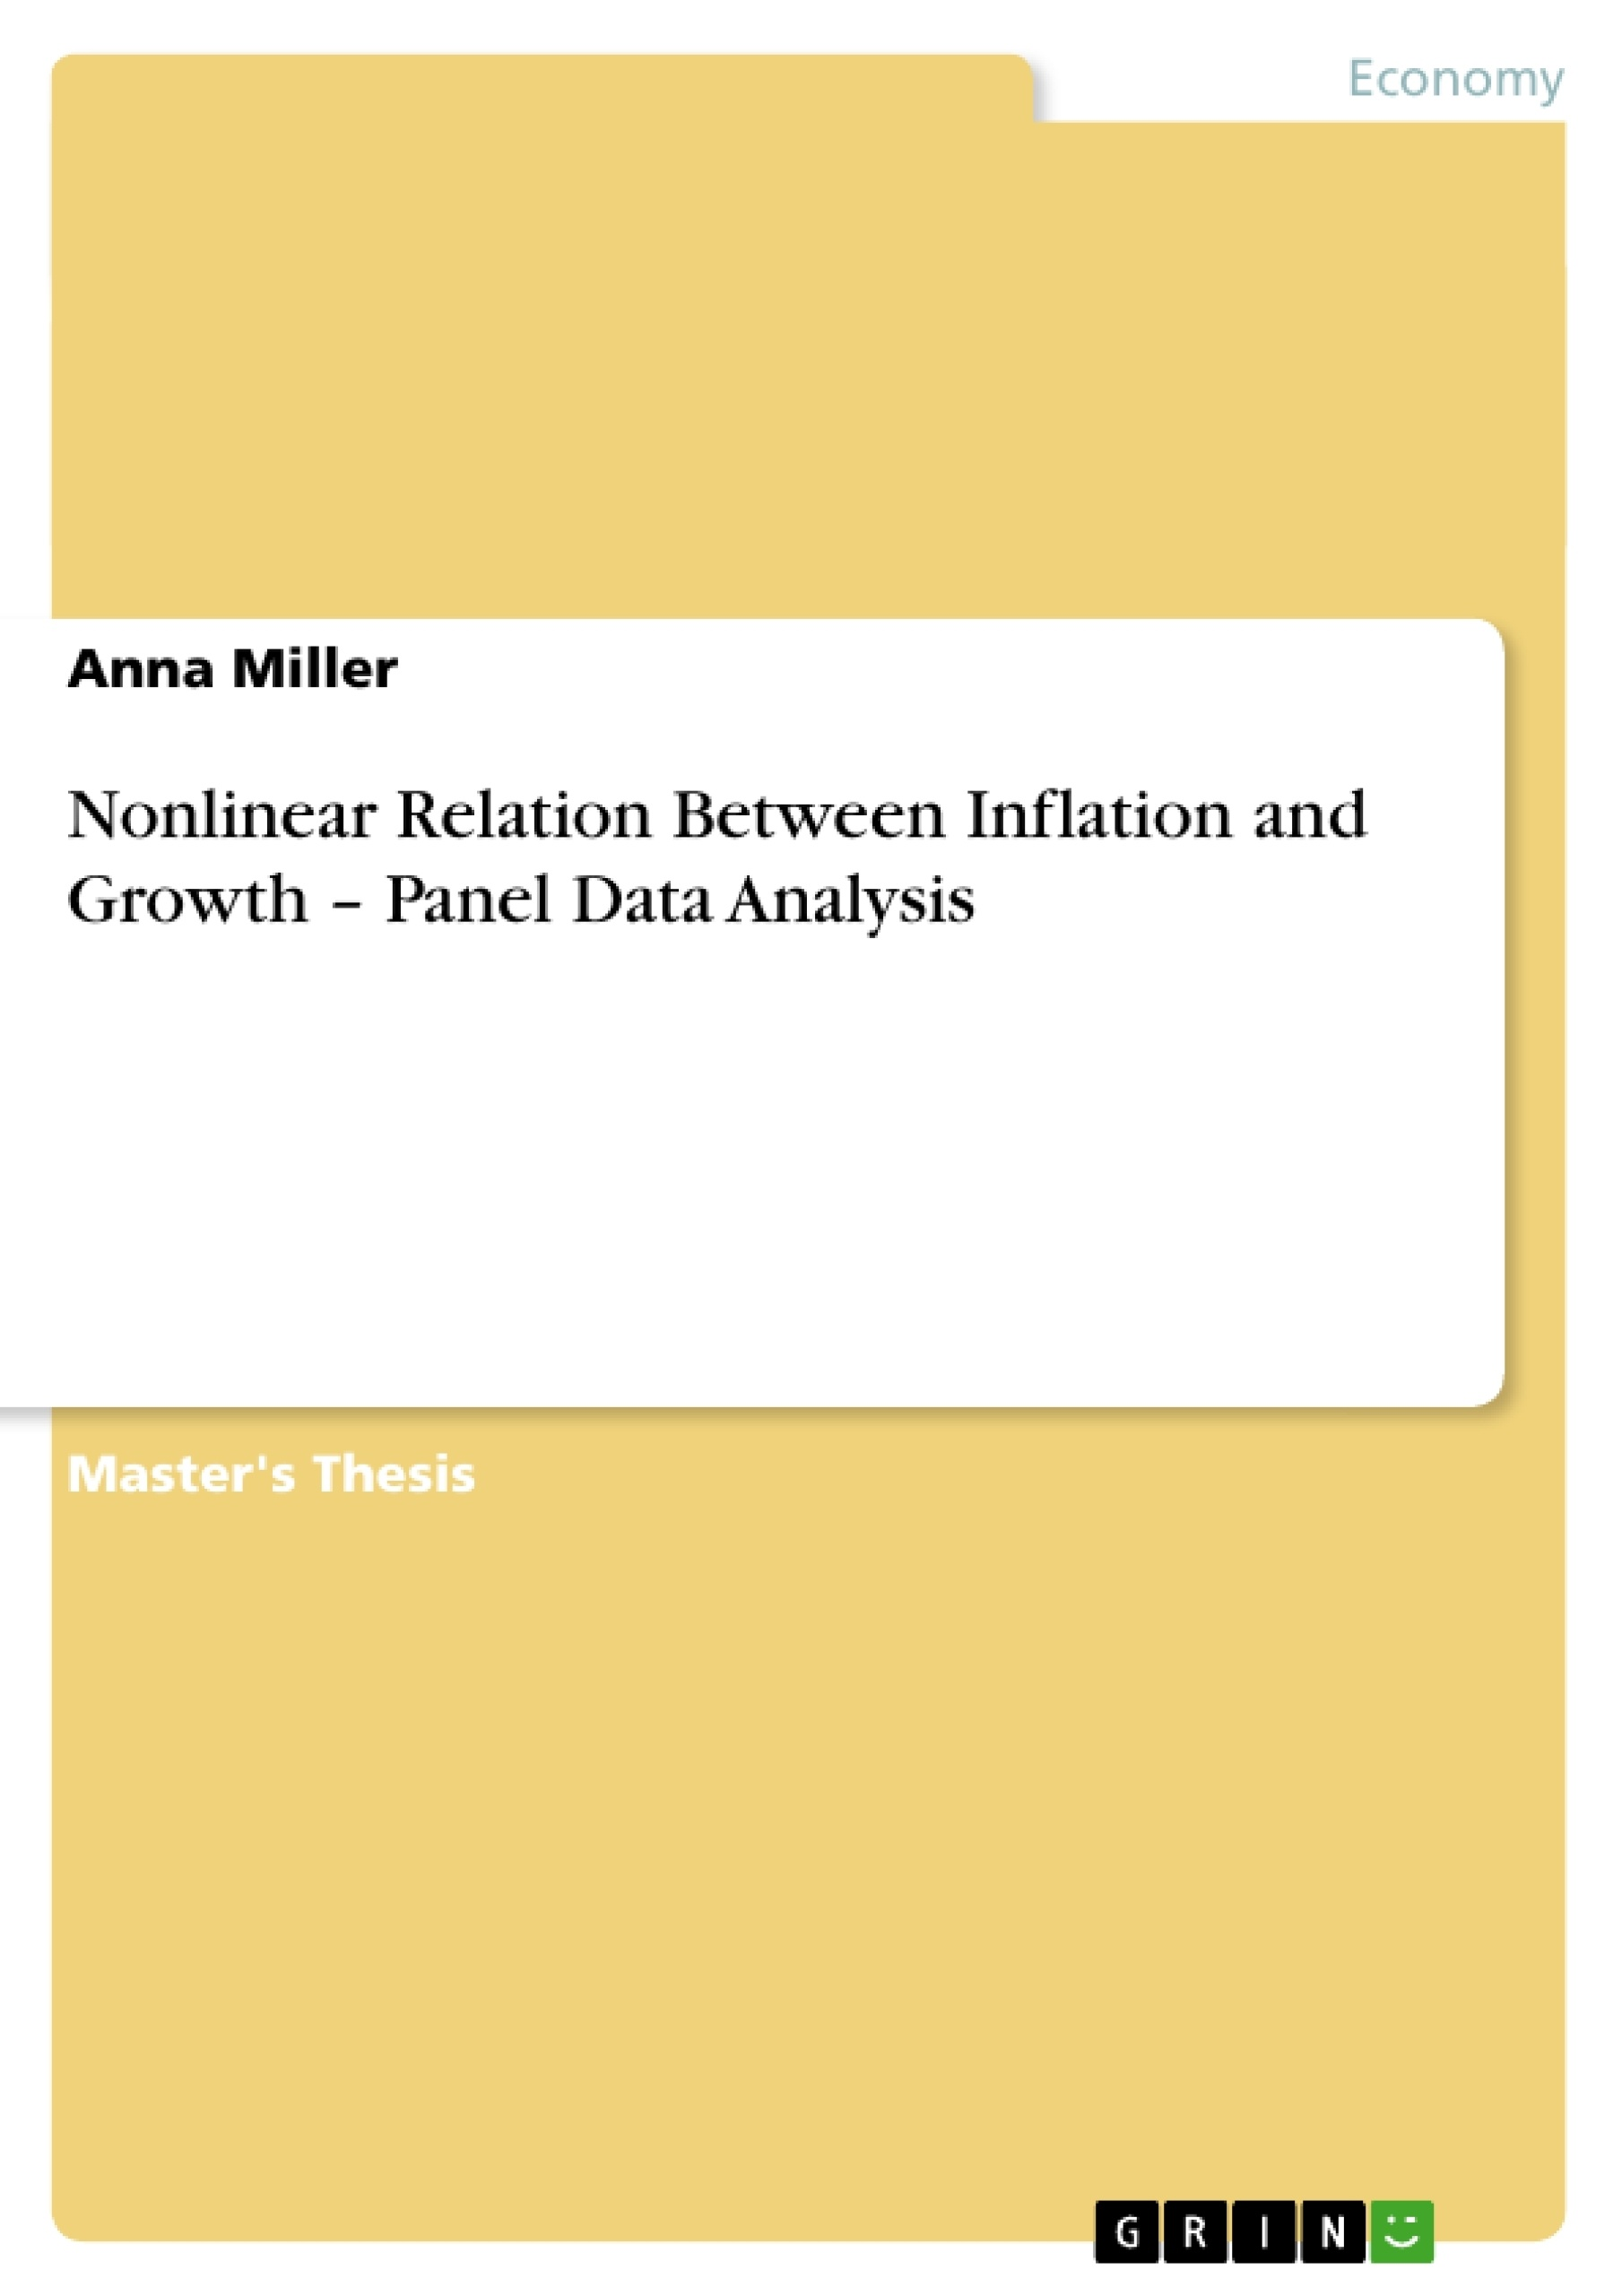 Title: Nonlinear Relation Between Inflation and Growth – Panel Data Analysis